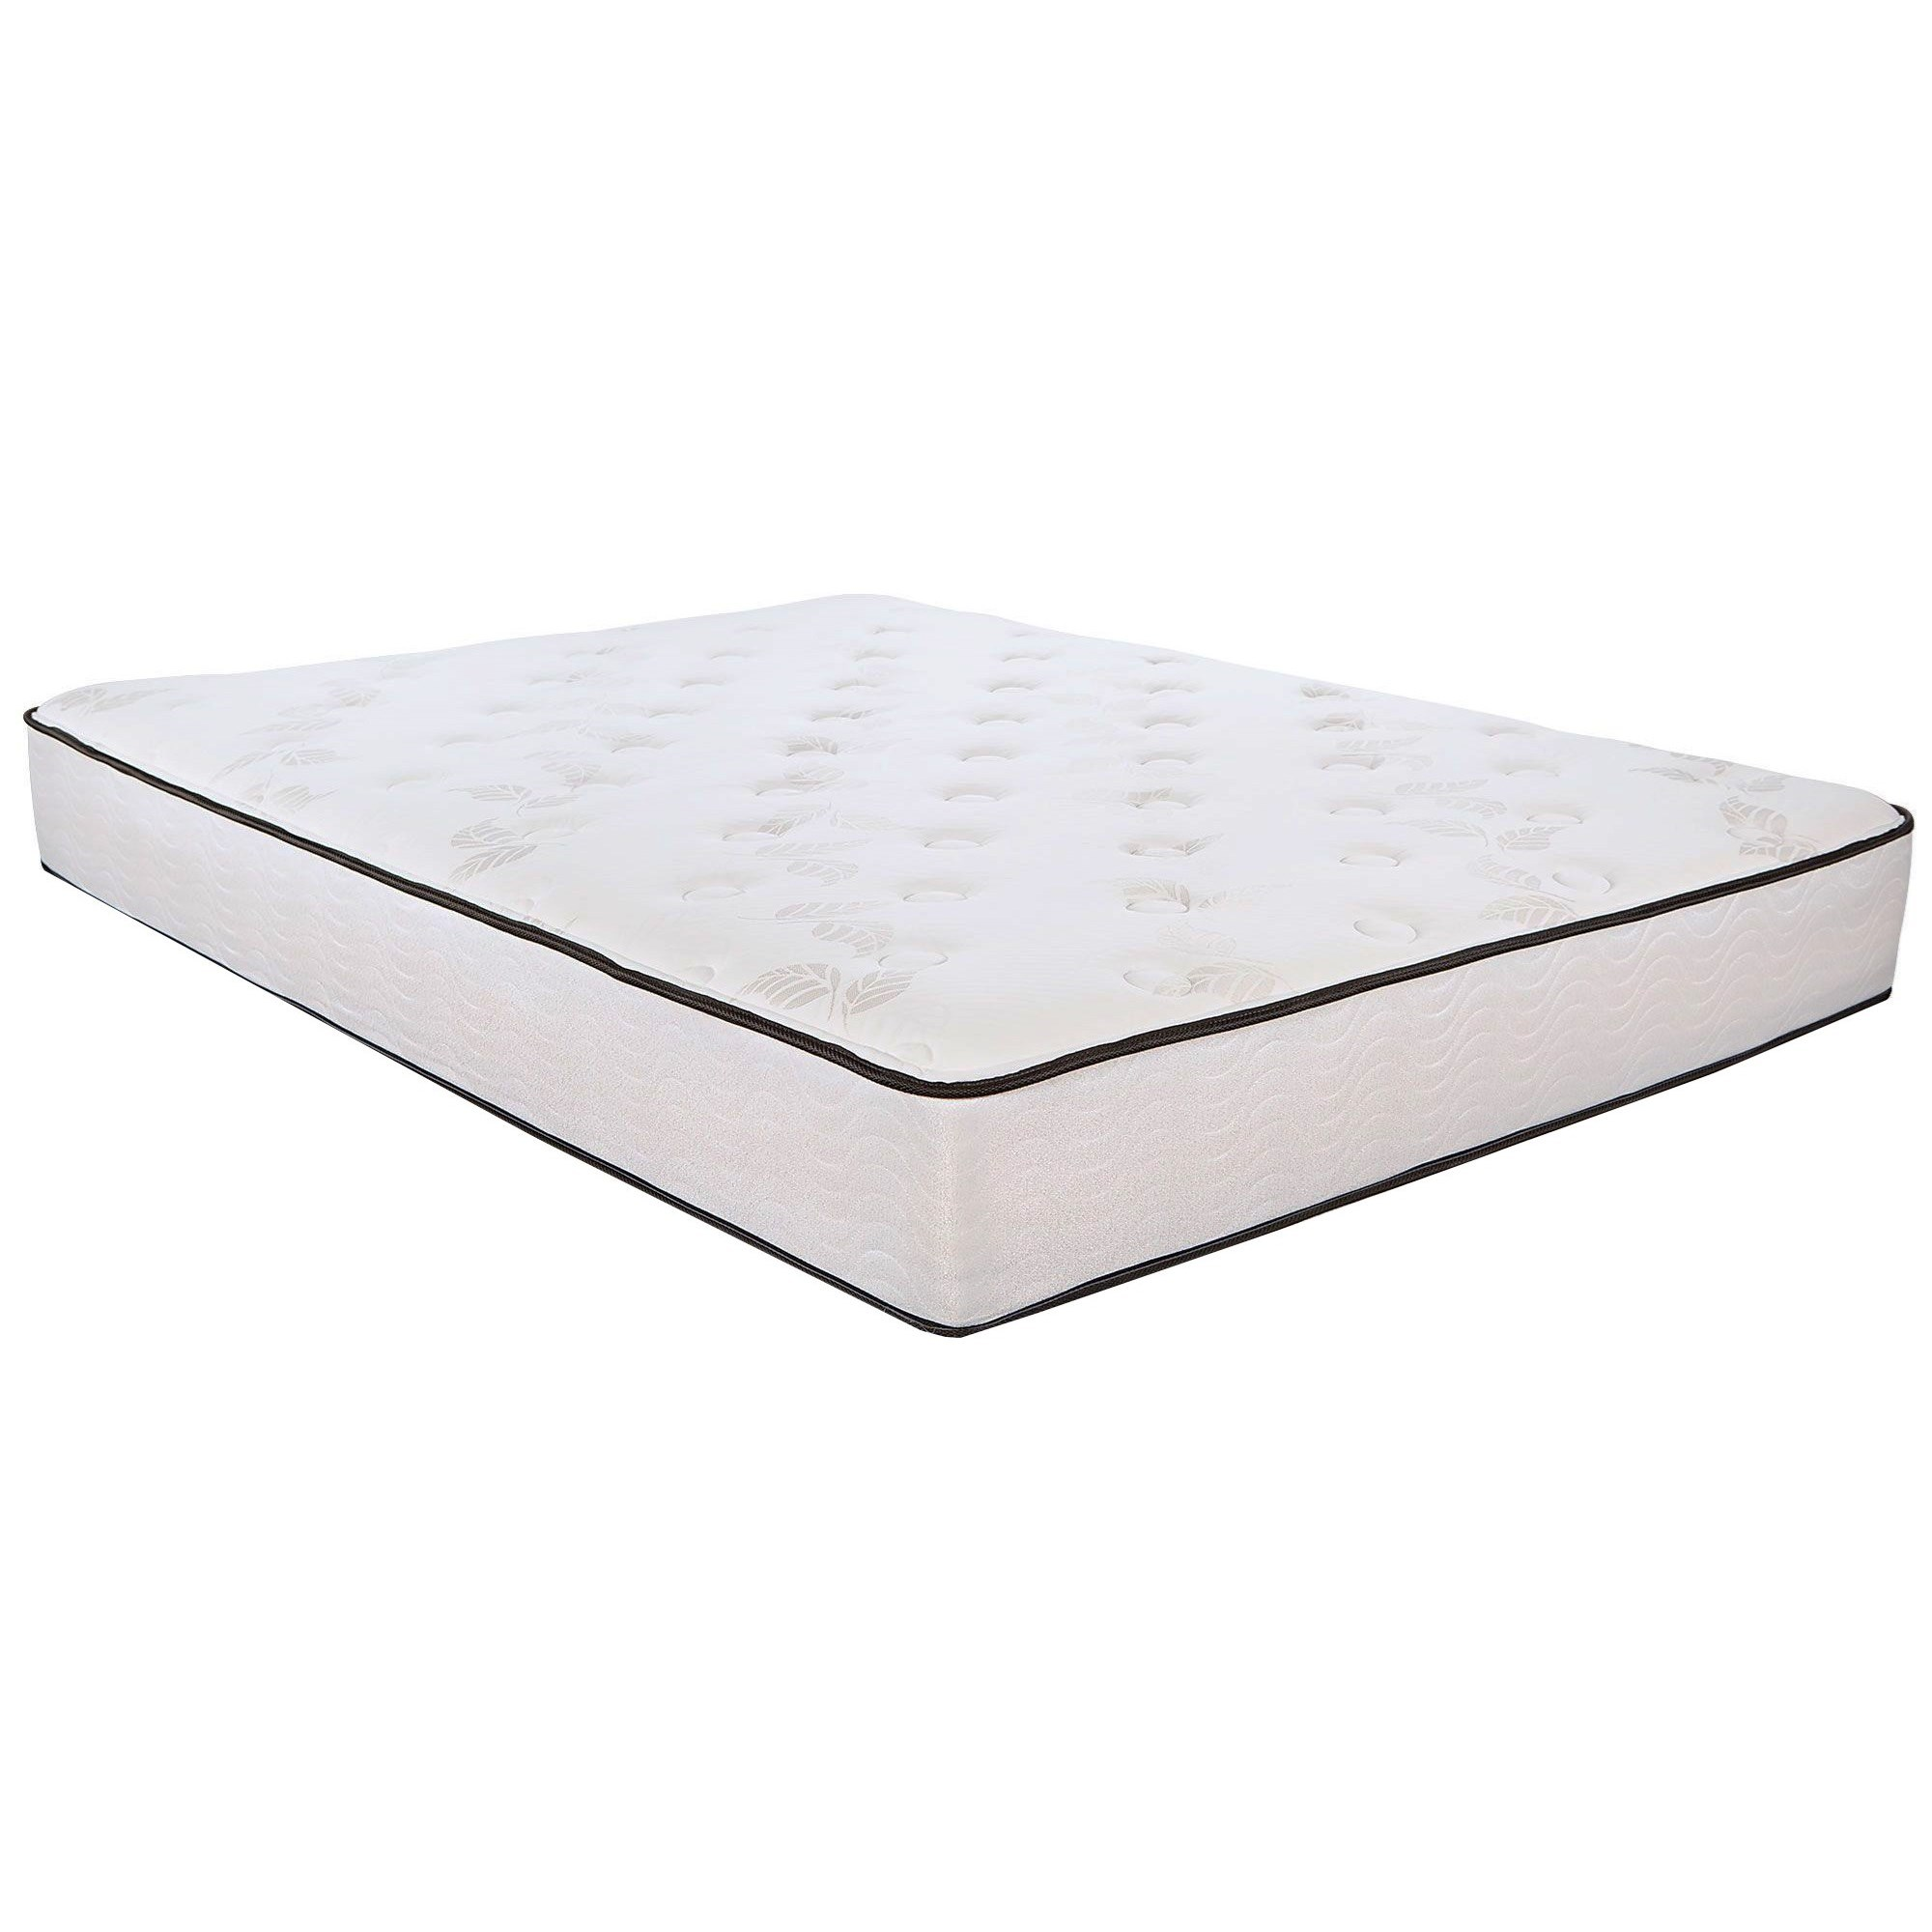 """5500 Plush Twin 10.9"""" Innerspring Mattress by Southerland Bedding Co. at Wilcox Furniture"""